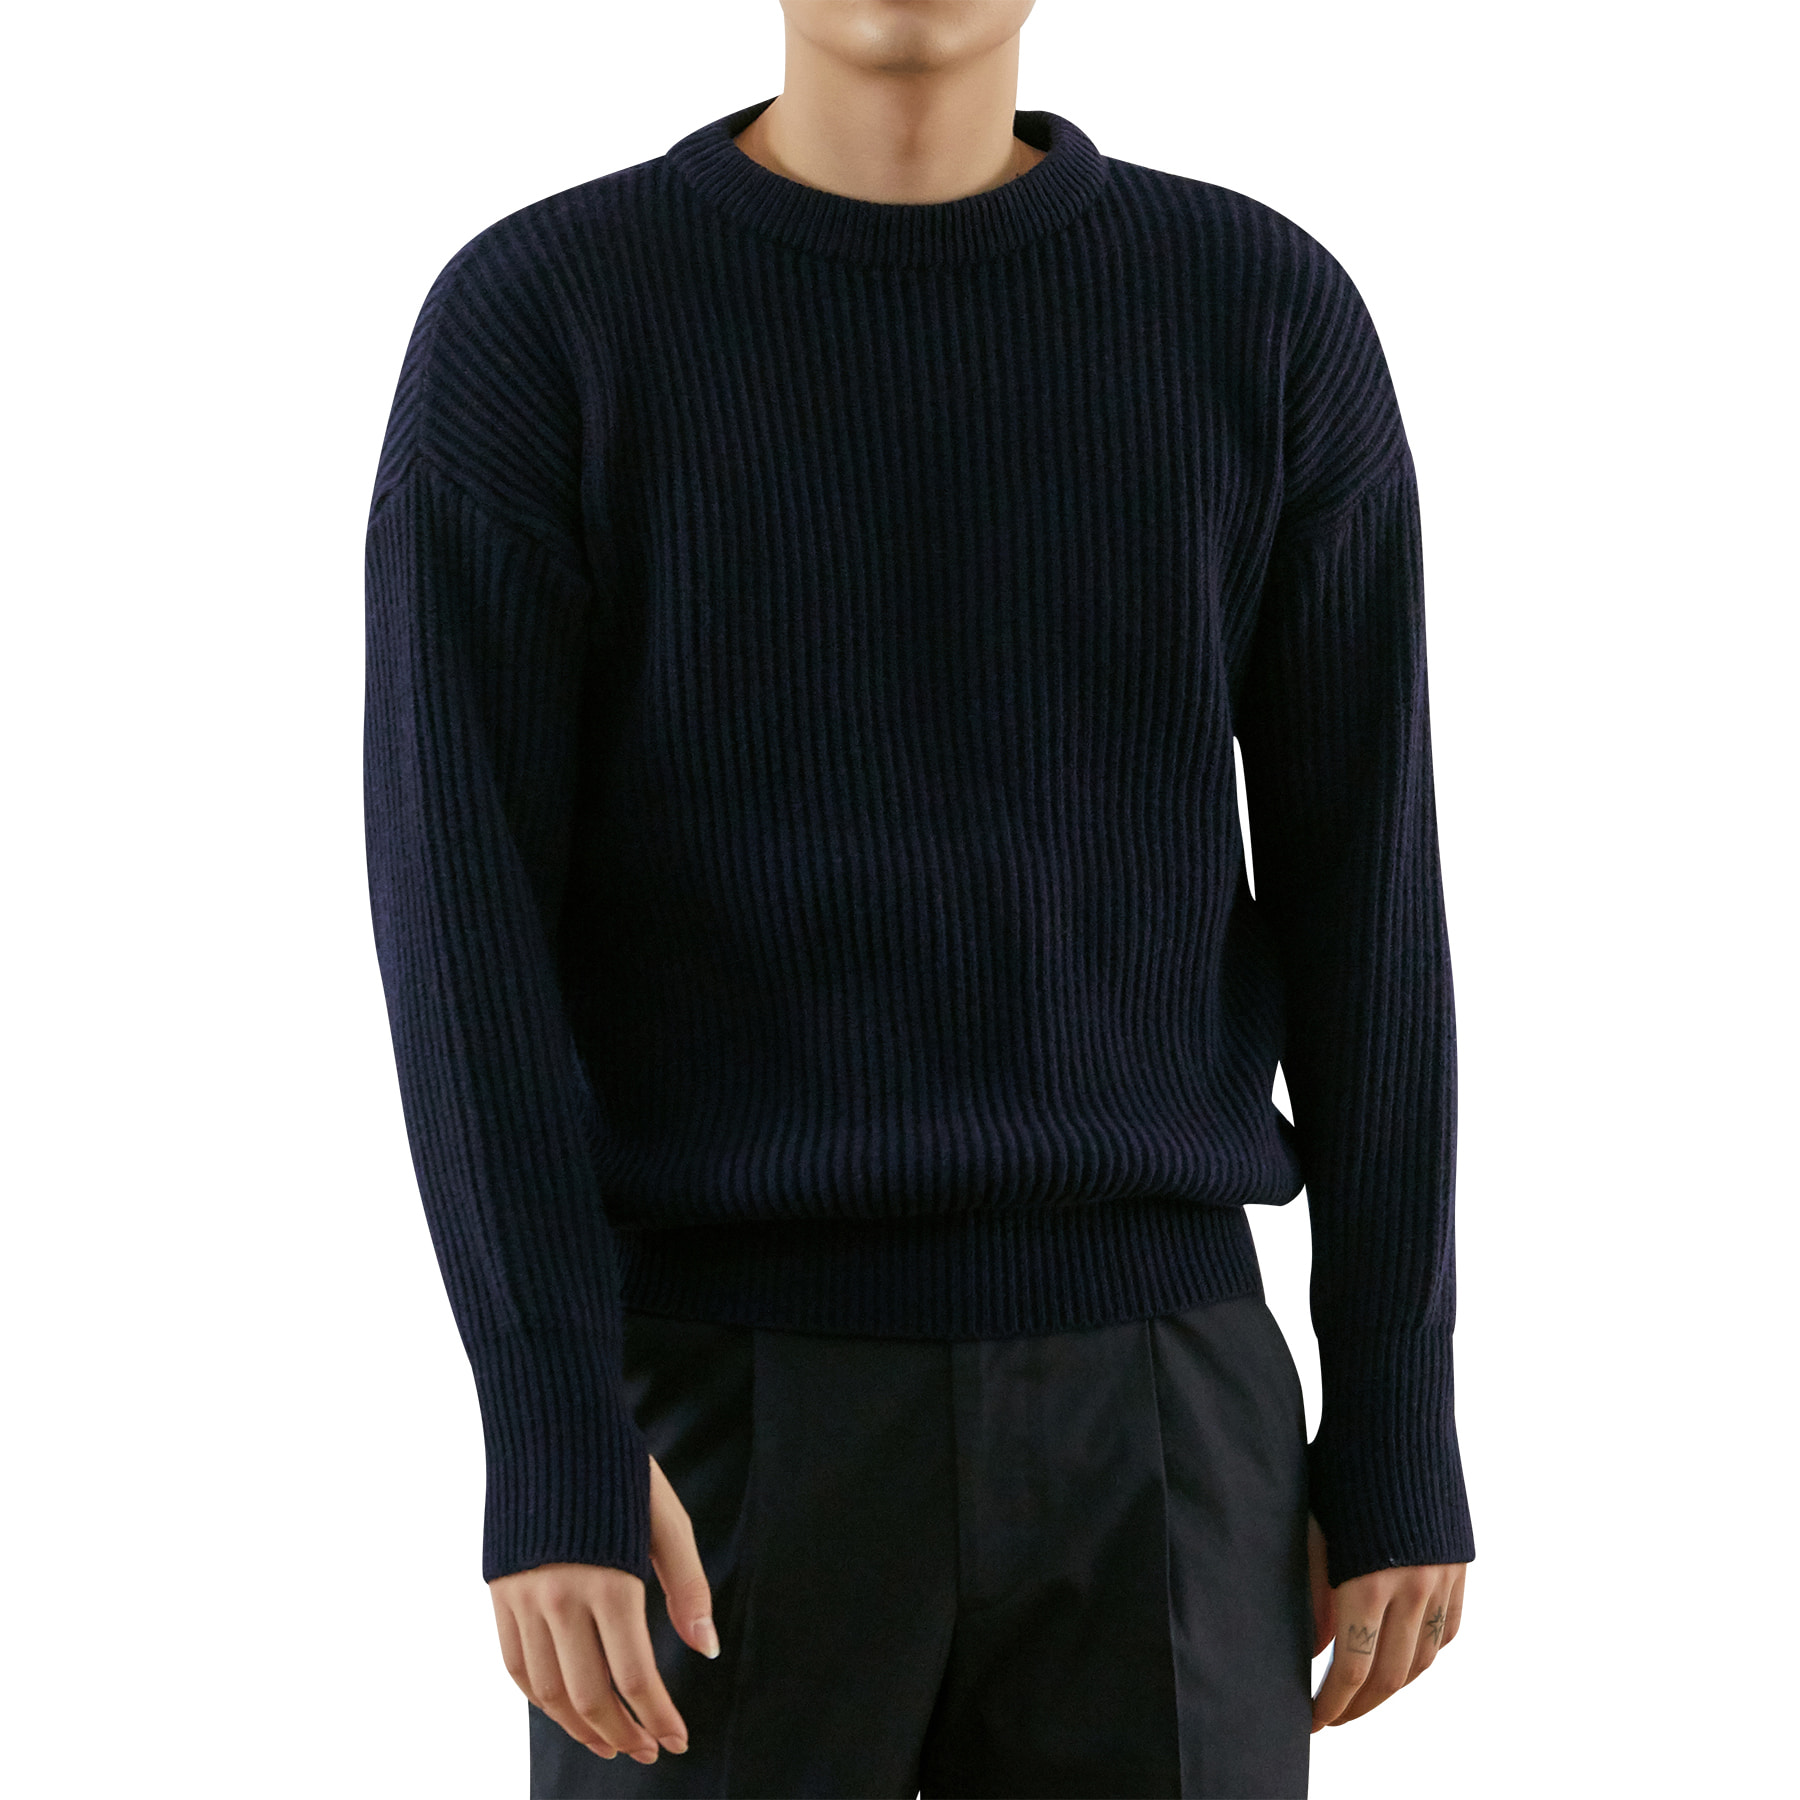 Unisex Drop Shoulder Wool Knit _ navy